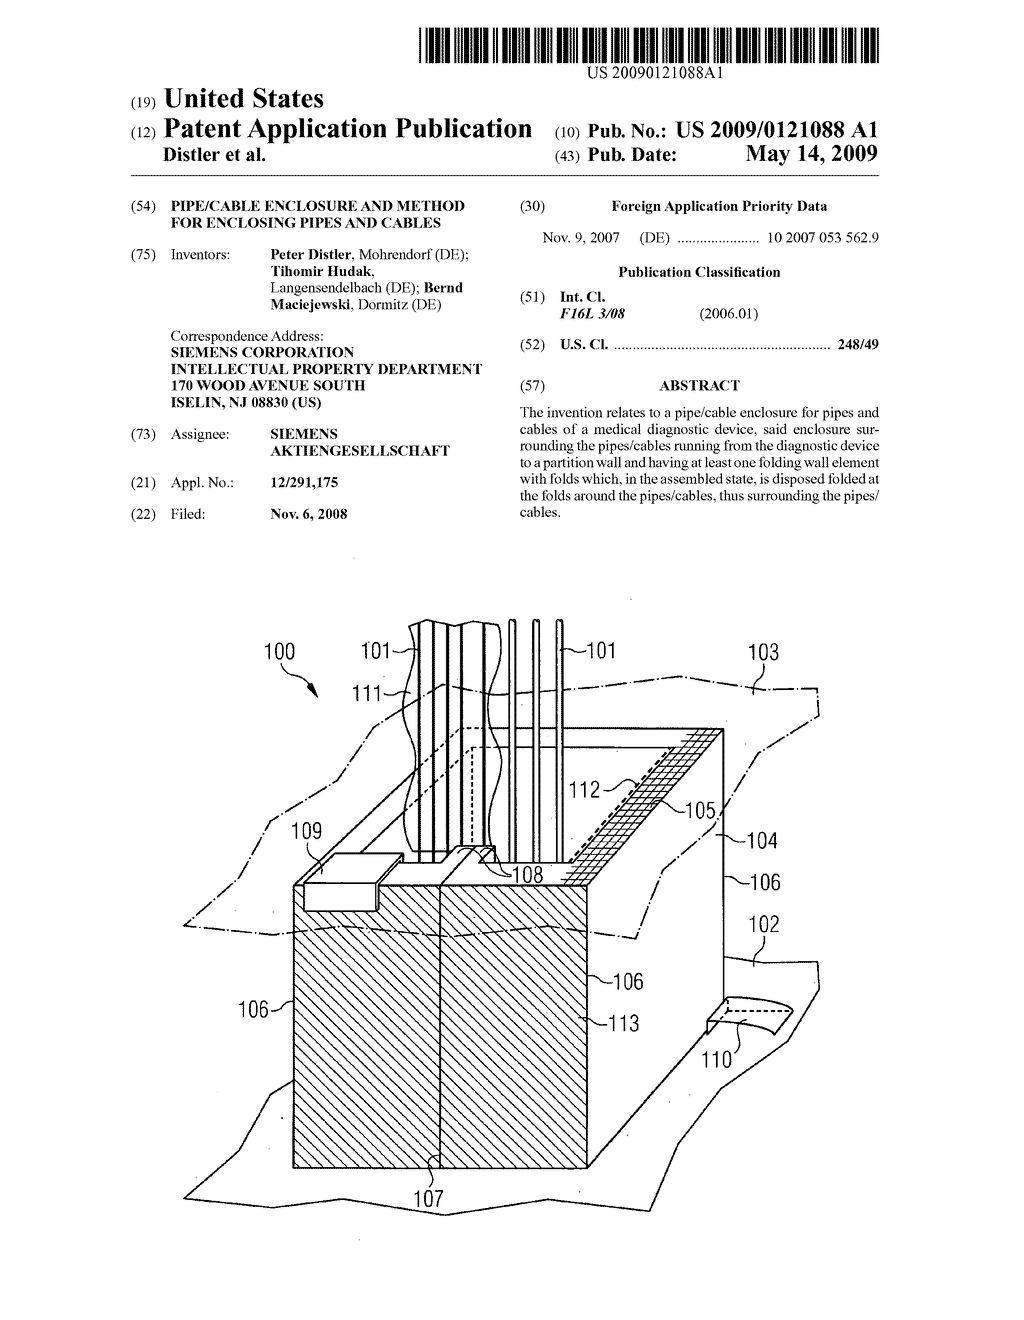 Pipe/cable enclosure and method for enclosing pipes and cables - diagram, schematic, and image 01